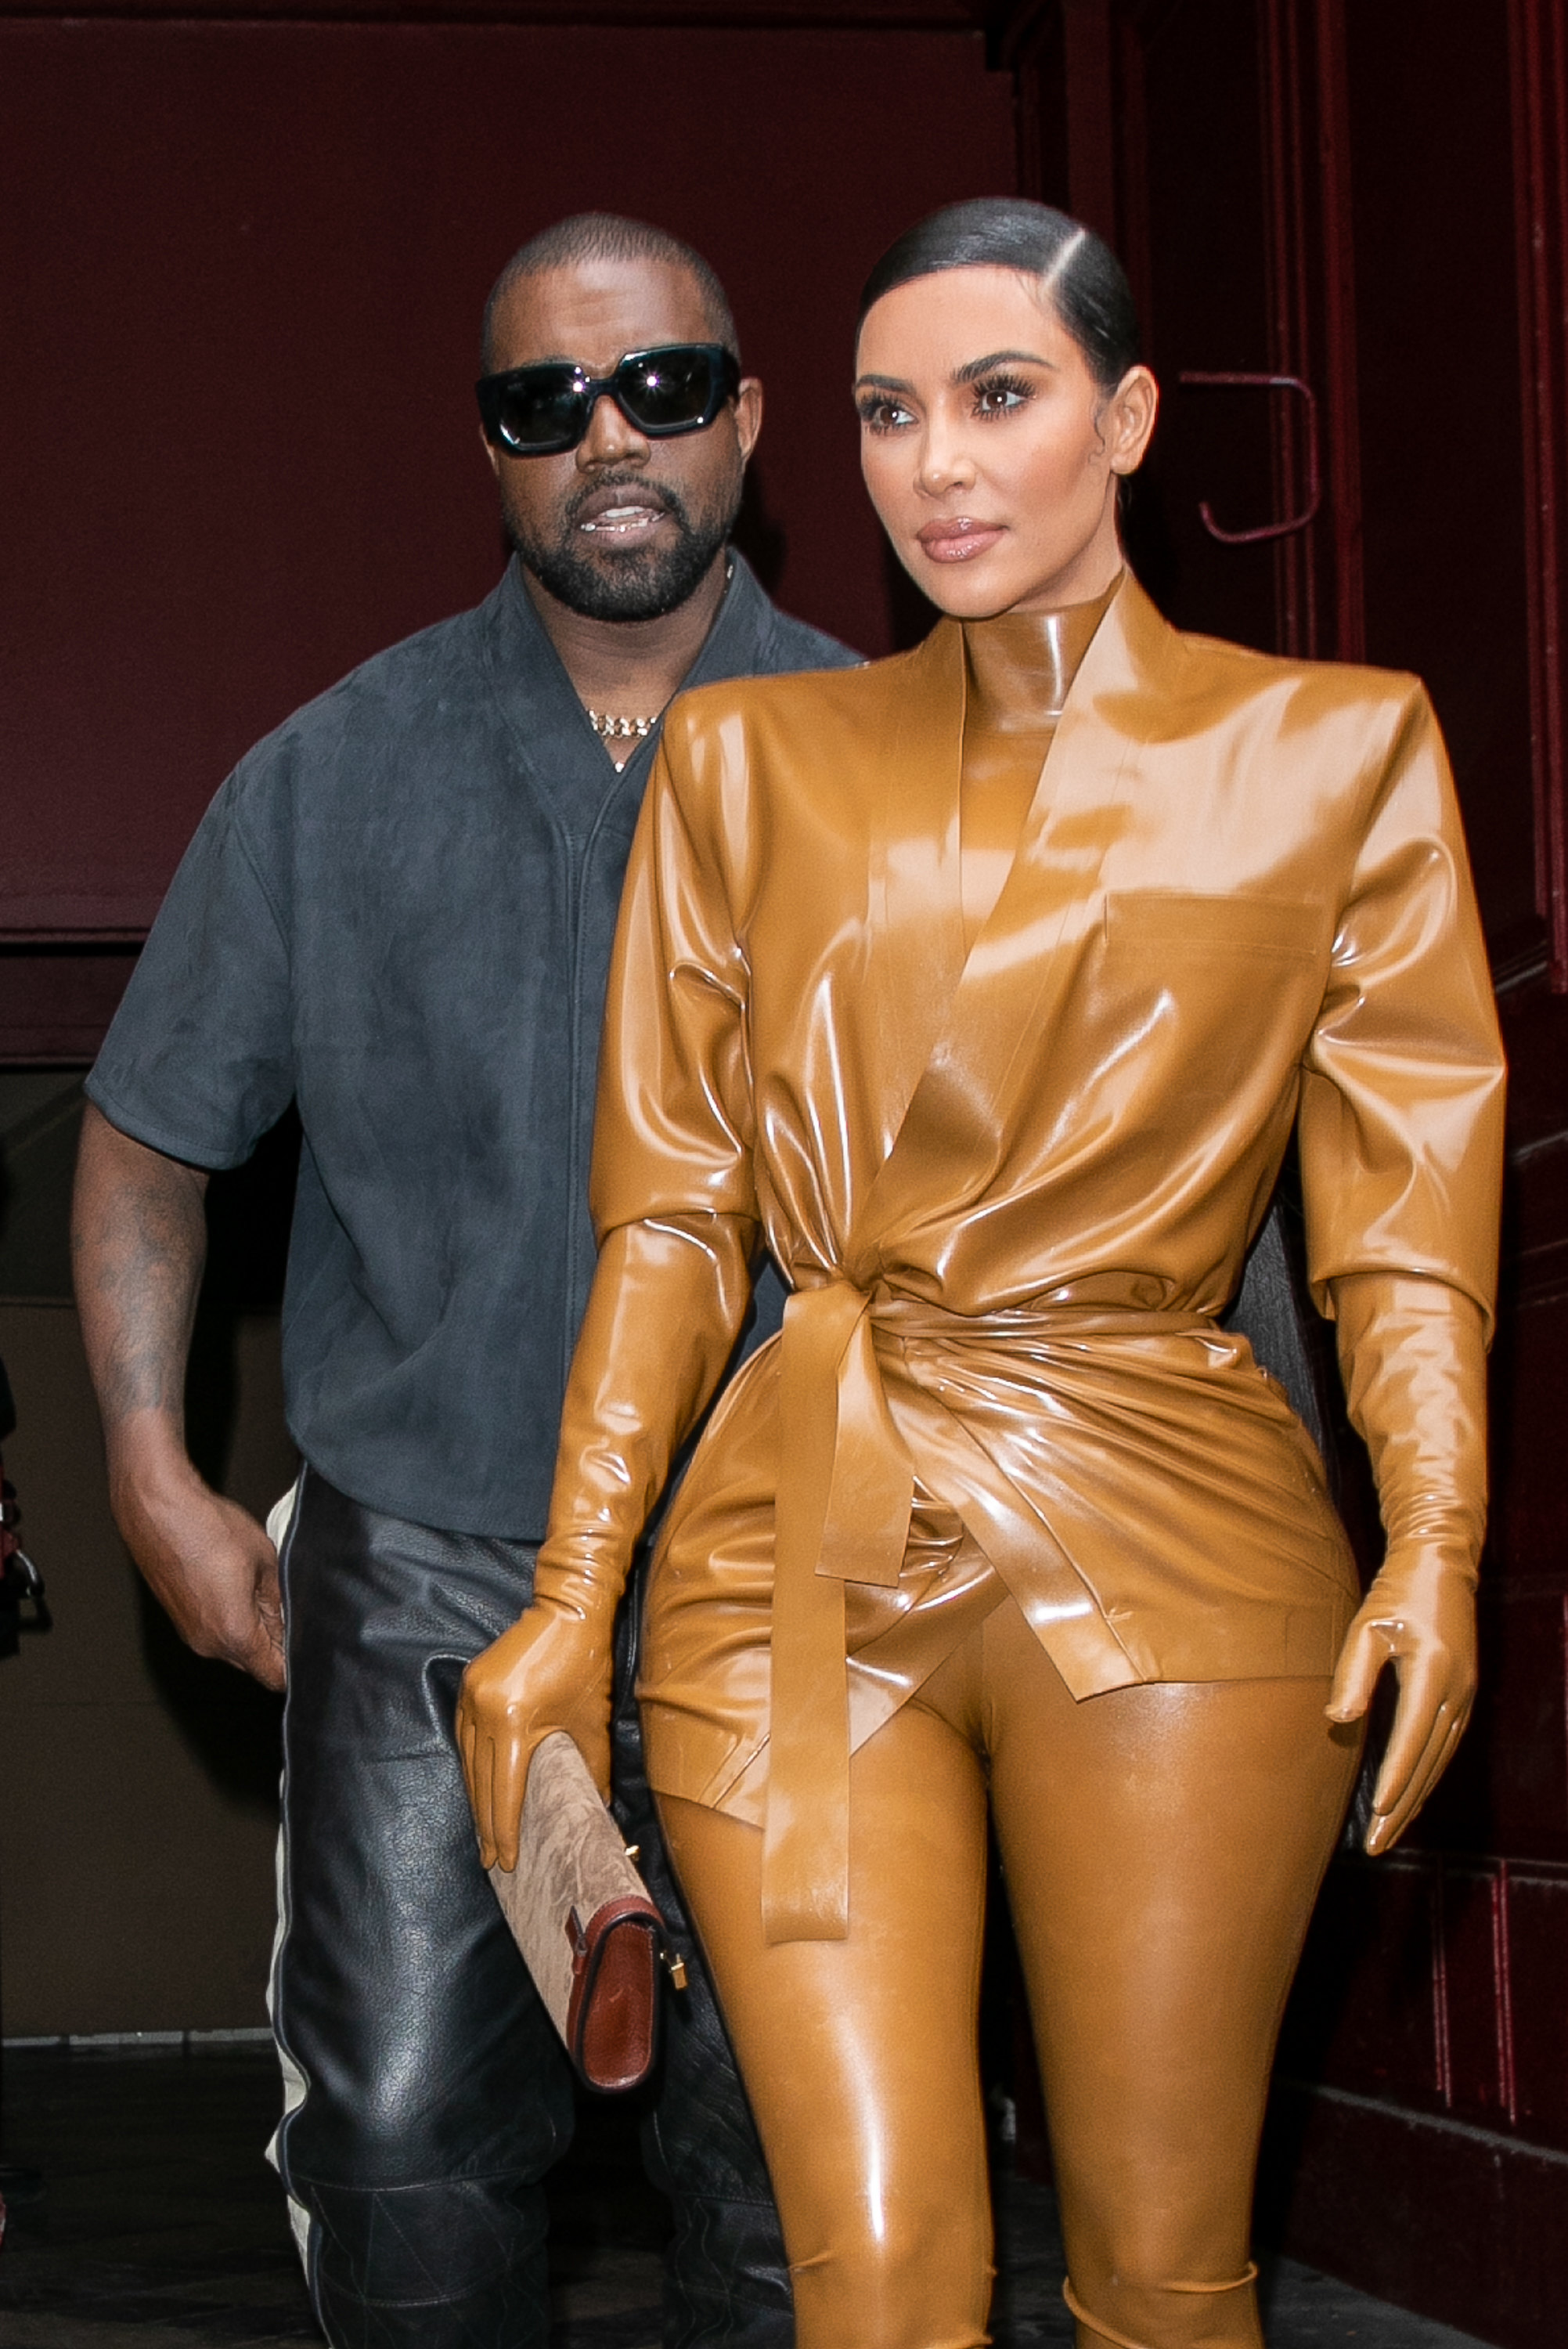 PARIS, FRANCE - MARCH 01: Kim Kardashian West and husband Kanye West leave K.West's Sunday Service At Theatre Des Bouffes Du Nord - Paris Fashion Week Womenswear Fall/Winter 2020/2021 on March 01, 2020 in Paris, France. (Photo by Marc Piasecki/WireImage/Getty Images